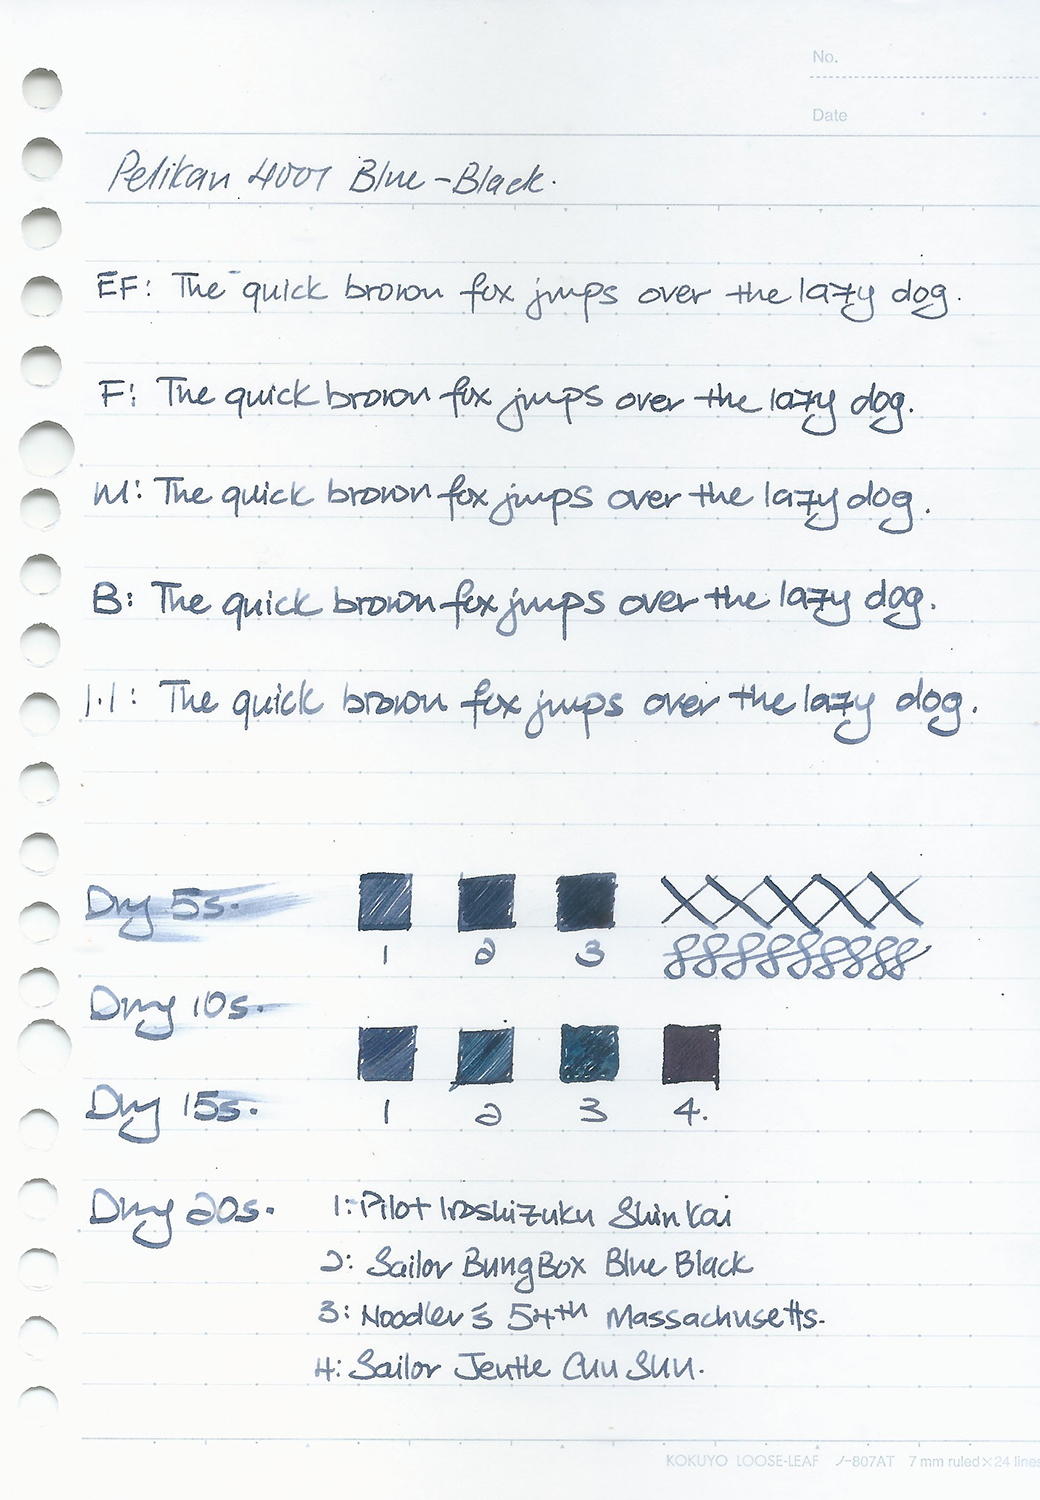 Pelikan 4001 Blue Black 1.JPG